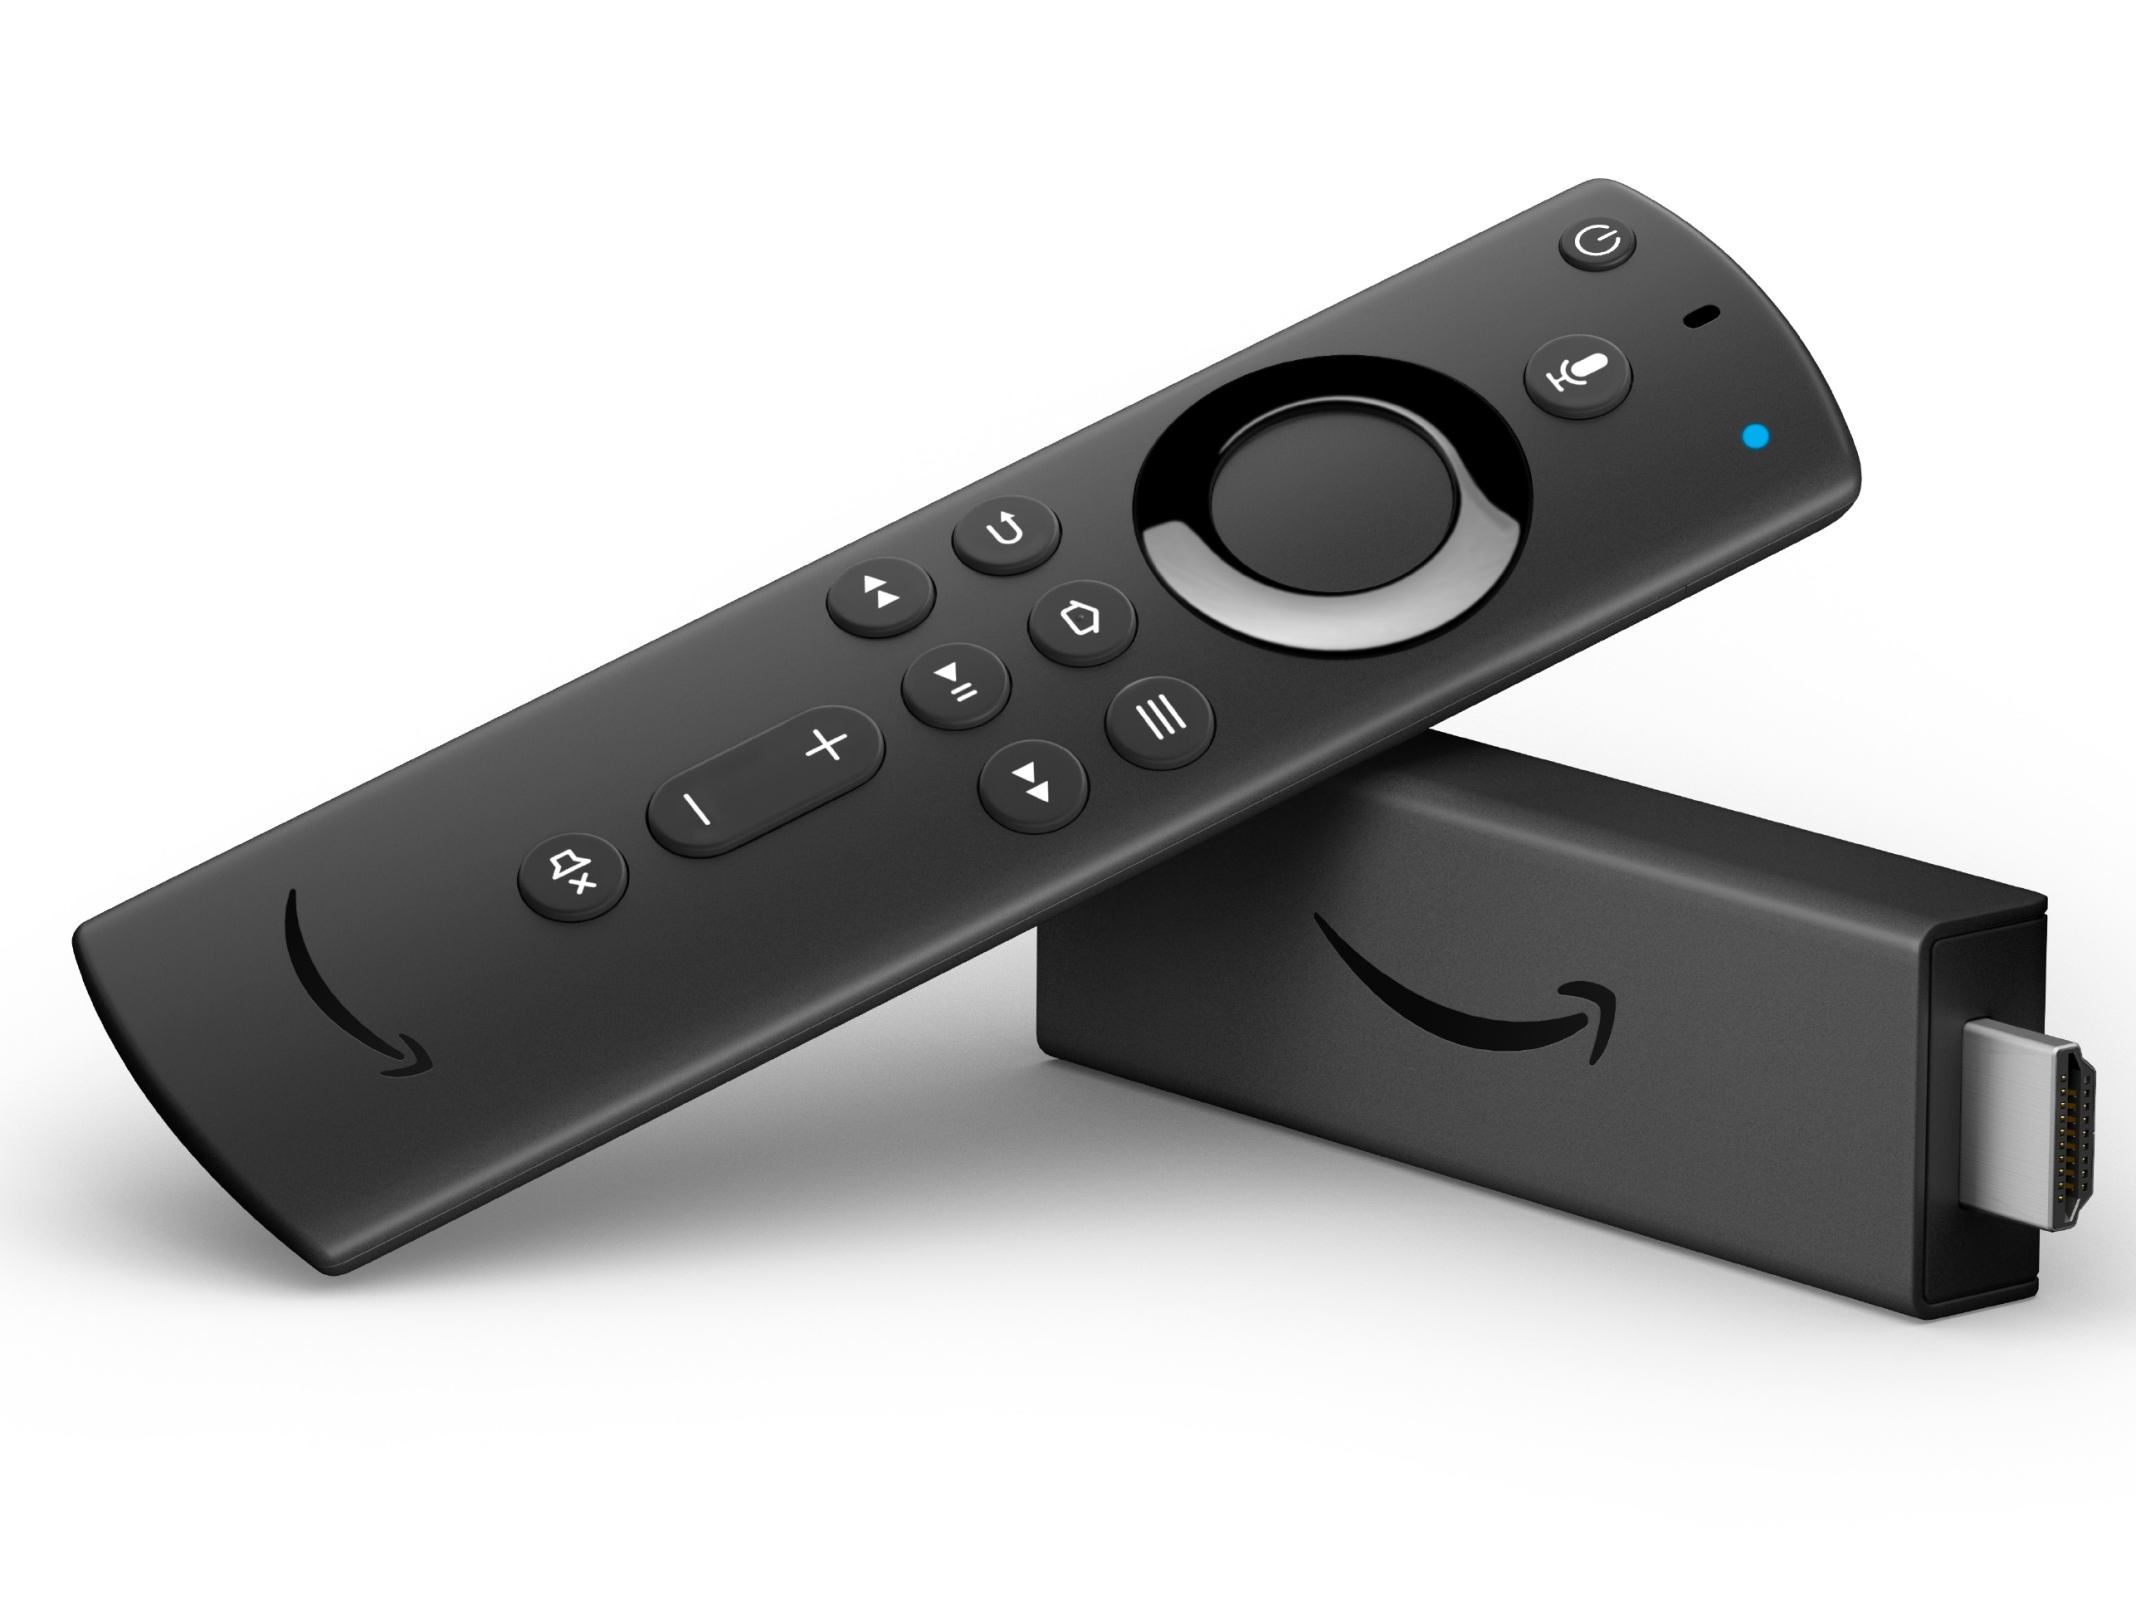 Amazon Fire TV 4K Stick